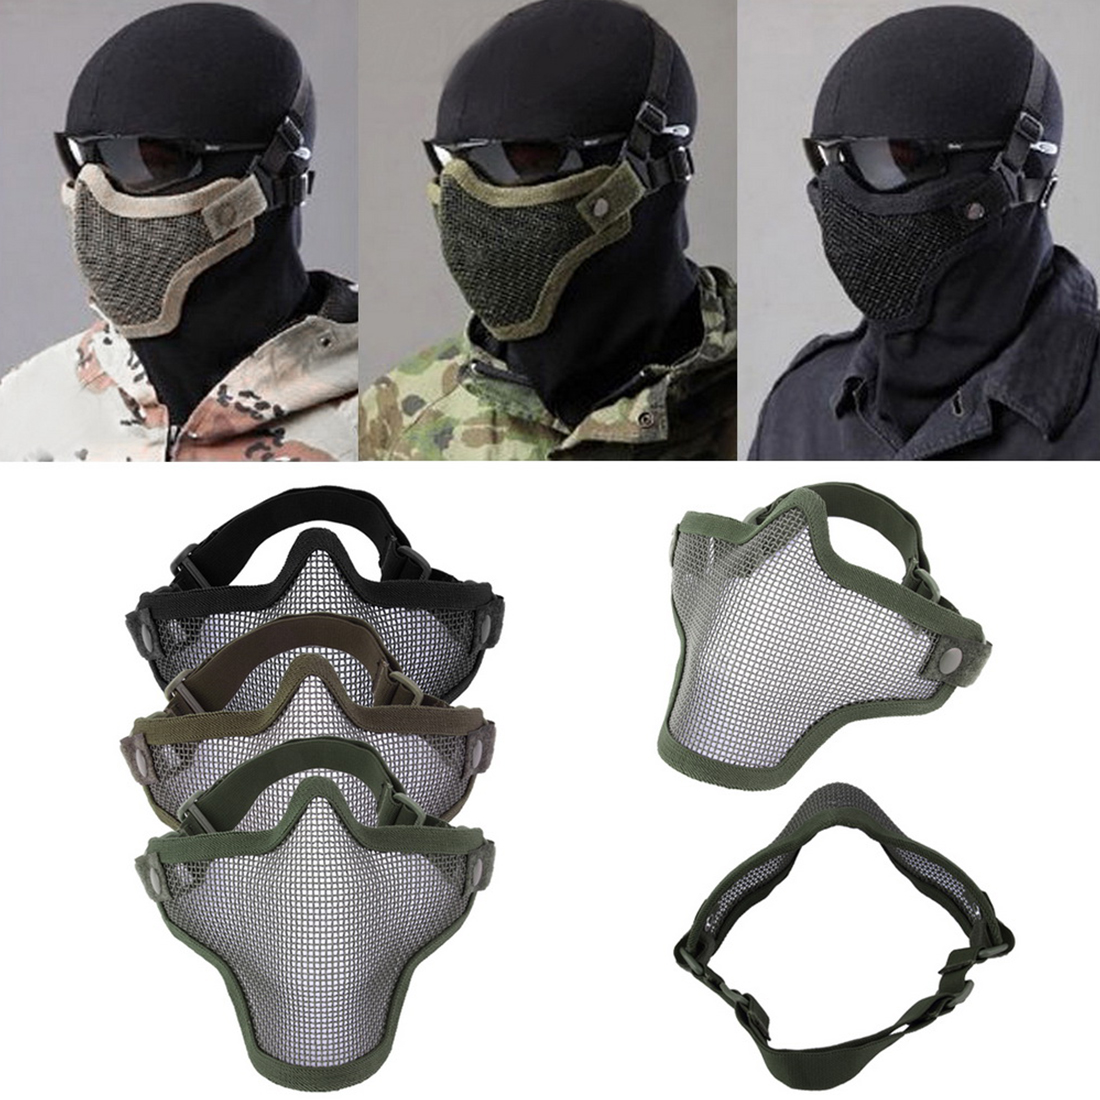 Brand New Half Lower Face Metal Steel Net Mesh Hunting Tactical Protective Airsoft Mask For Military Paintball Hunting Airsoft